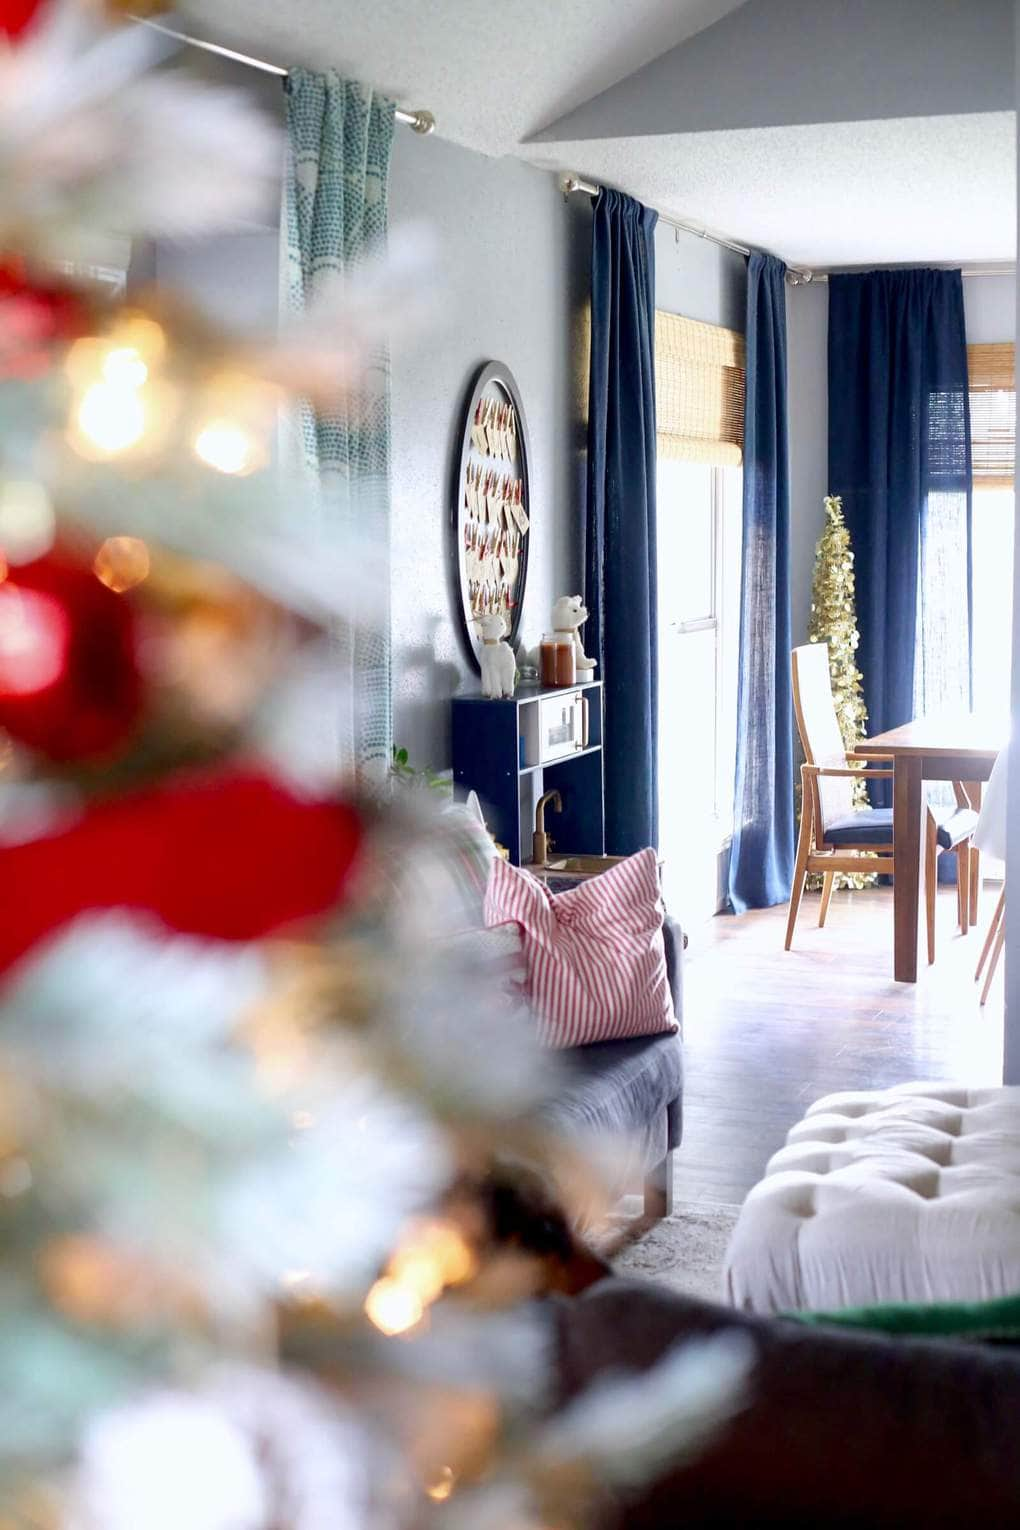 A cozy, rustic glam home tour to inspire you this Christmas season. This home is decorated with lots of simple, rustic elements and a lot of sparkle! This 2016 Christmas home tour is absolutely gorgeous and stuffed full of great decorating ideas.